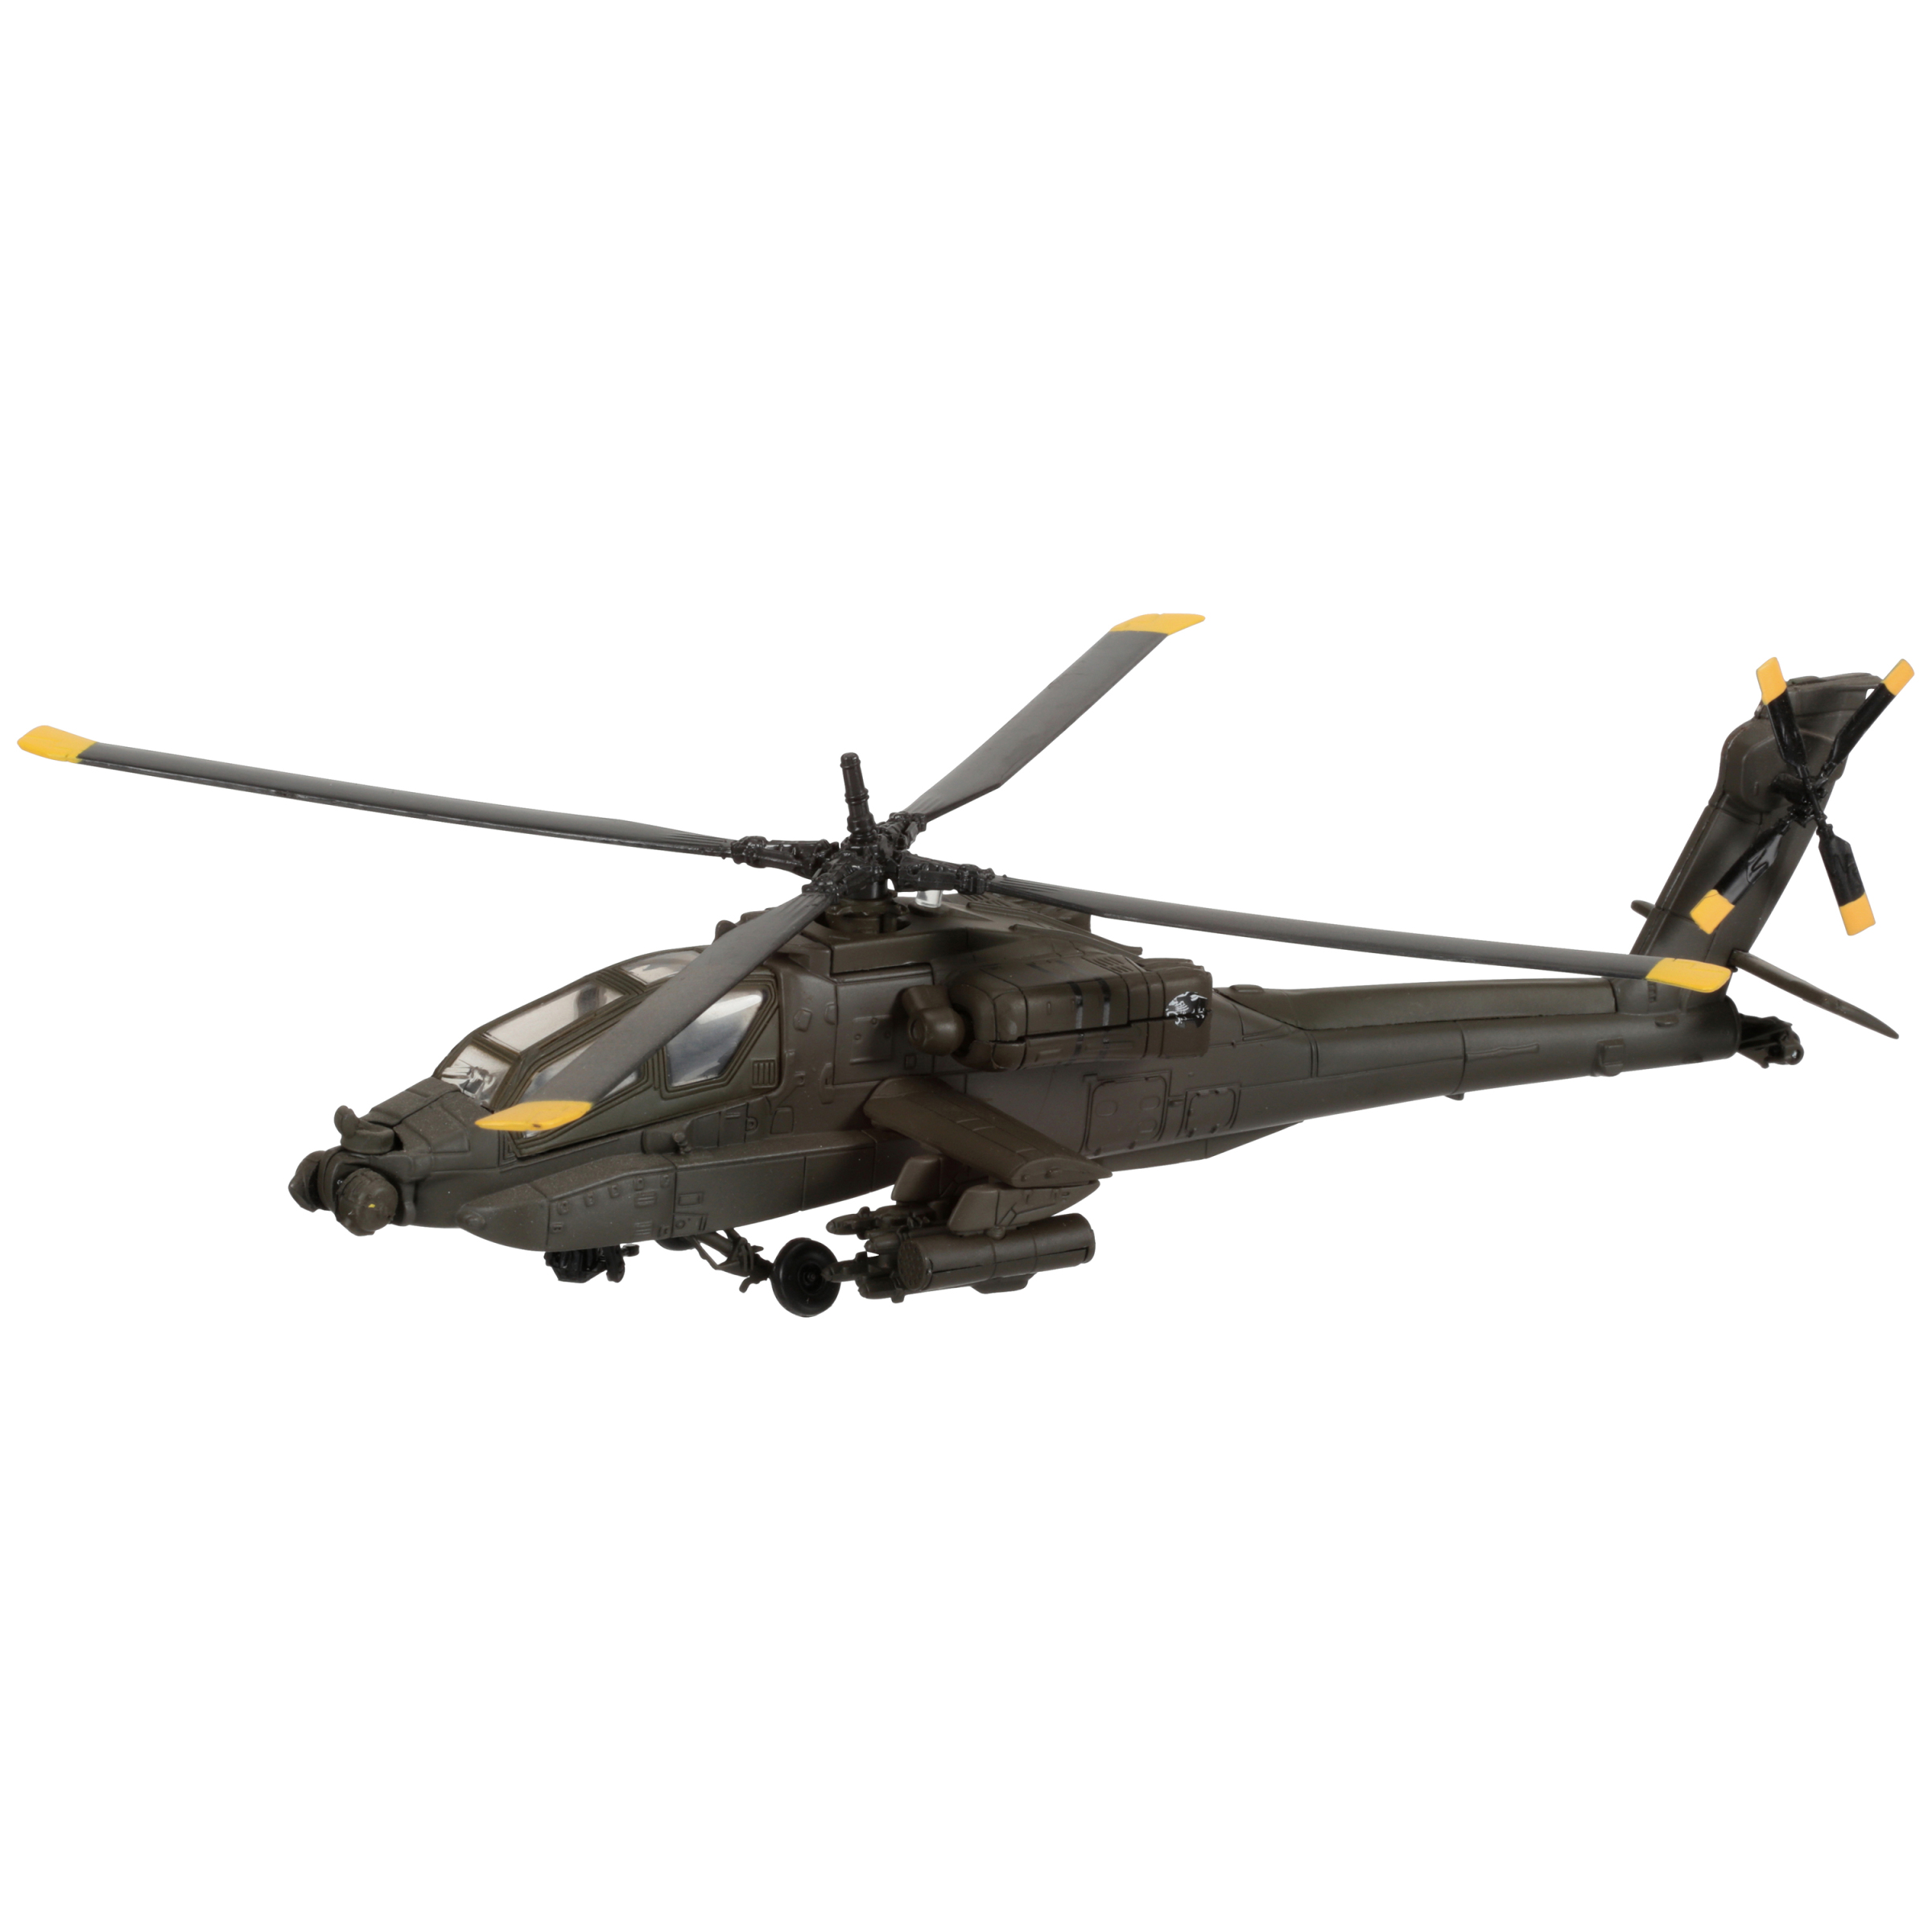 New-Ray Military Mission Toy Helicopter by New-Ray Toys (CA) Inc.